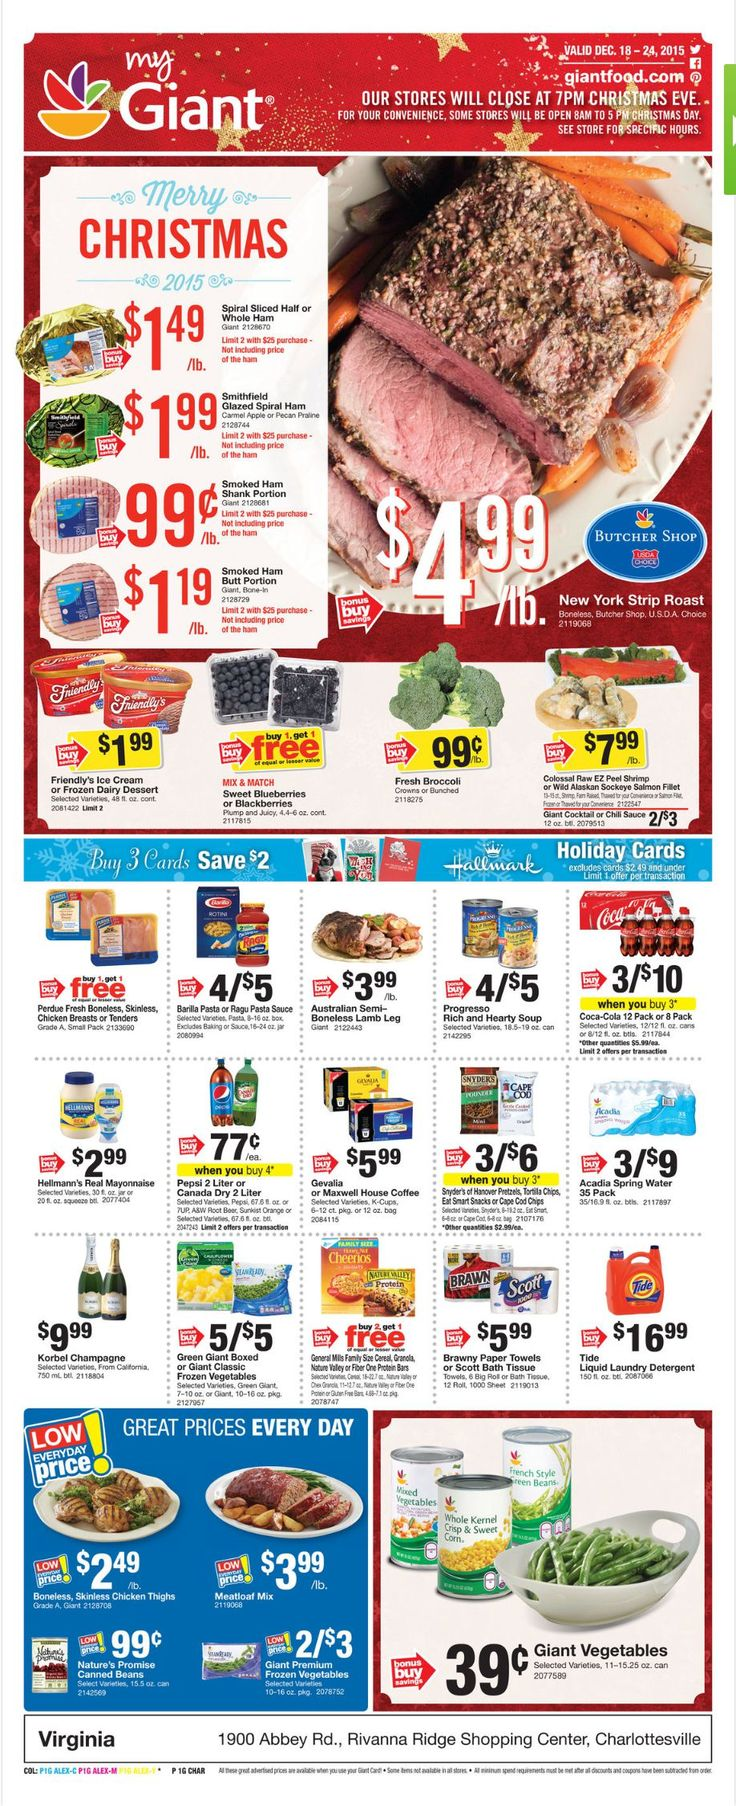 Giant Food Weekly Ad December 18 - 24, 2015 - http://www.kaitalog.com/giant-food-weekly-ad.html